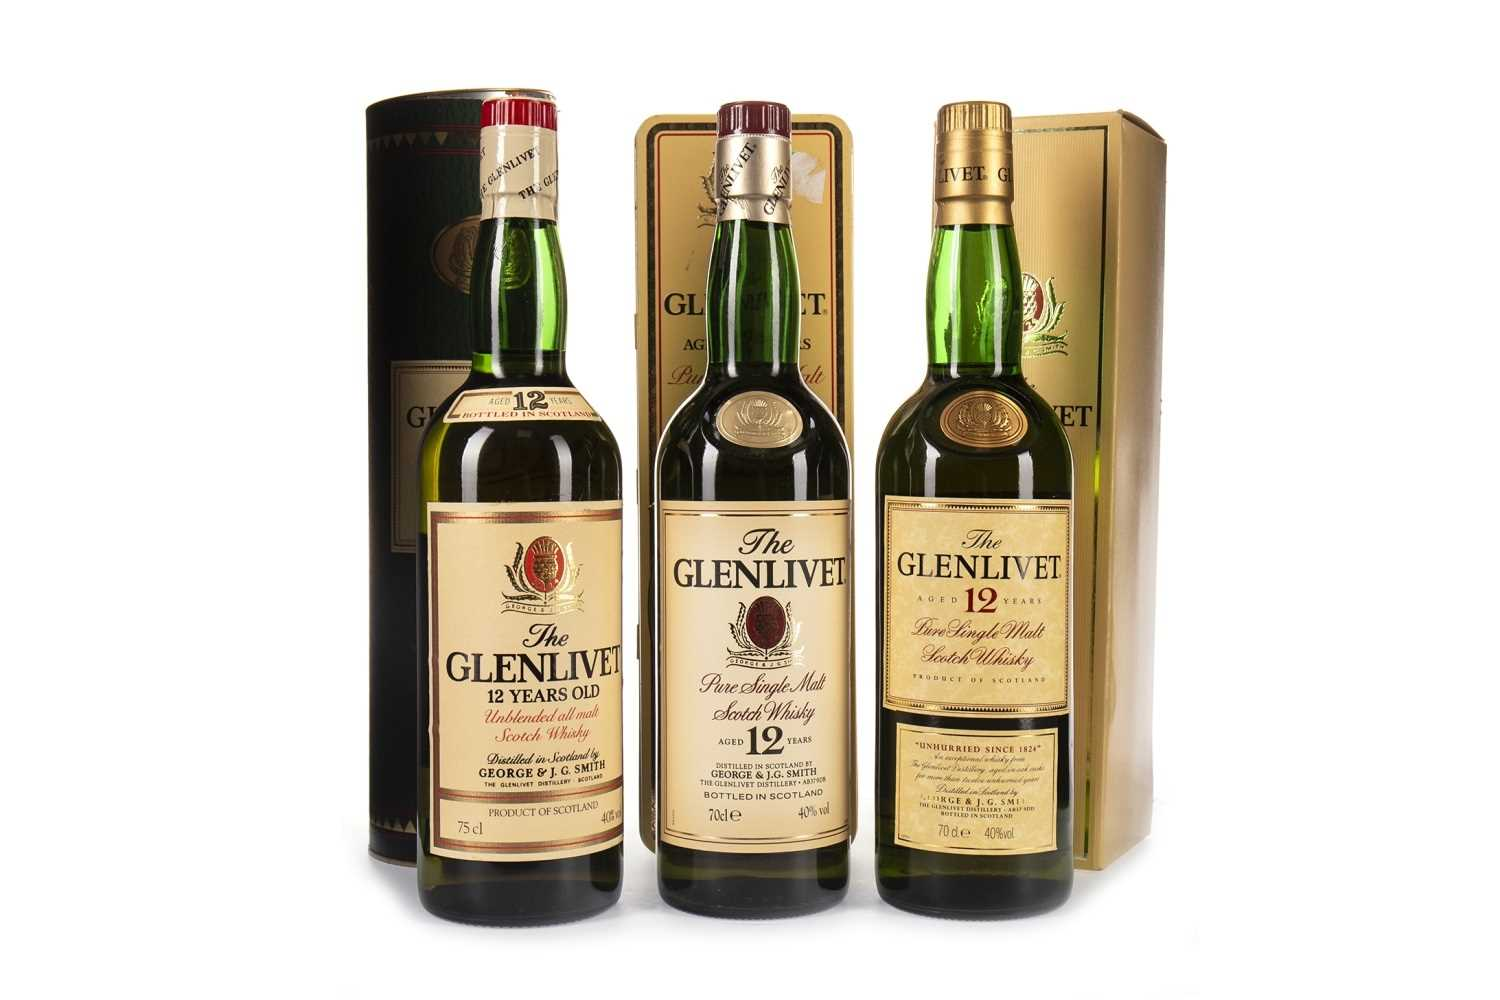 Lot 324-THREE BOTTLES OF GLENLIVET AGED 12 YEARS